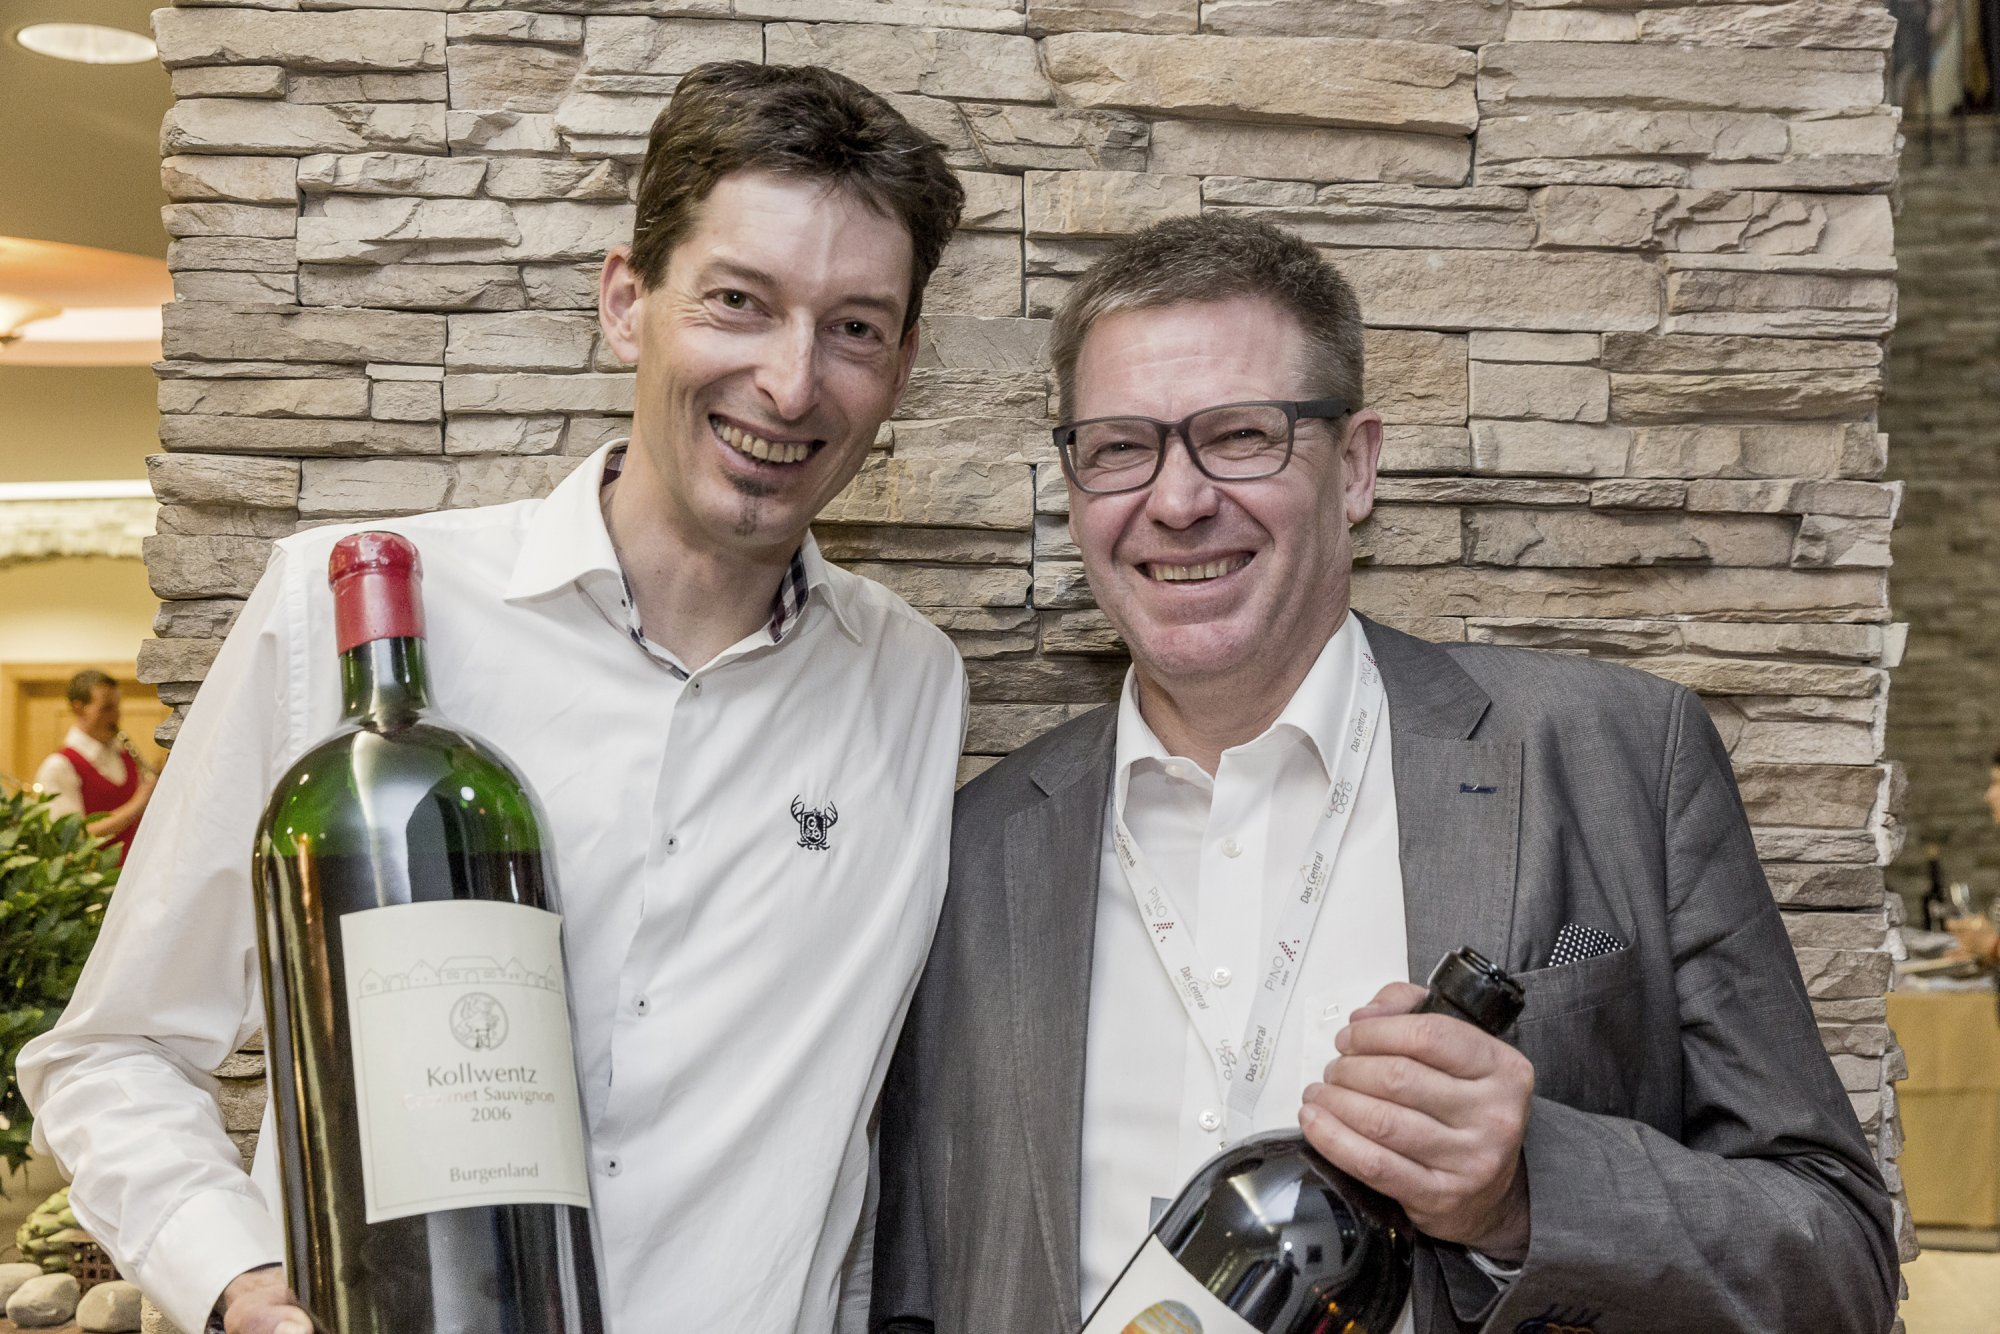 Andi Kollwentz & Wolfgang Reisner have fun at Wein am Berg